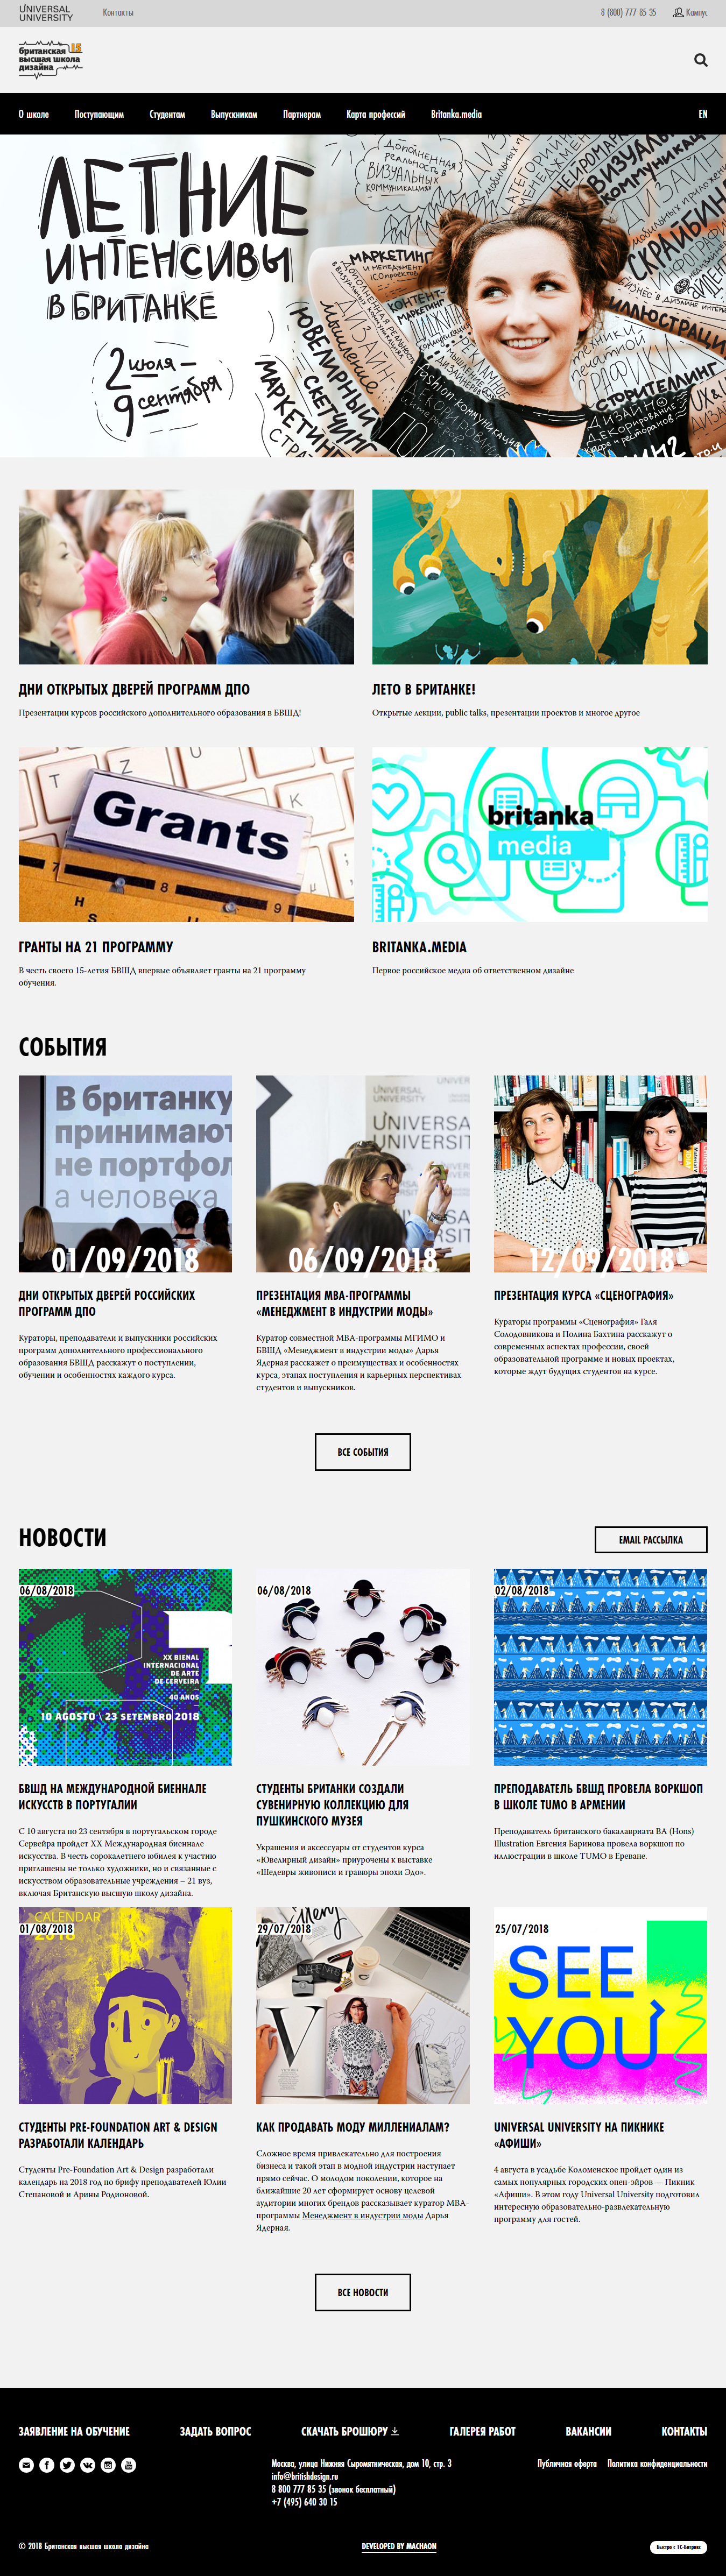 screenshot-britishdesign.ru-2018.08.07-11-18-31.png